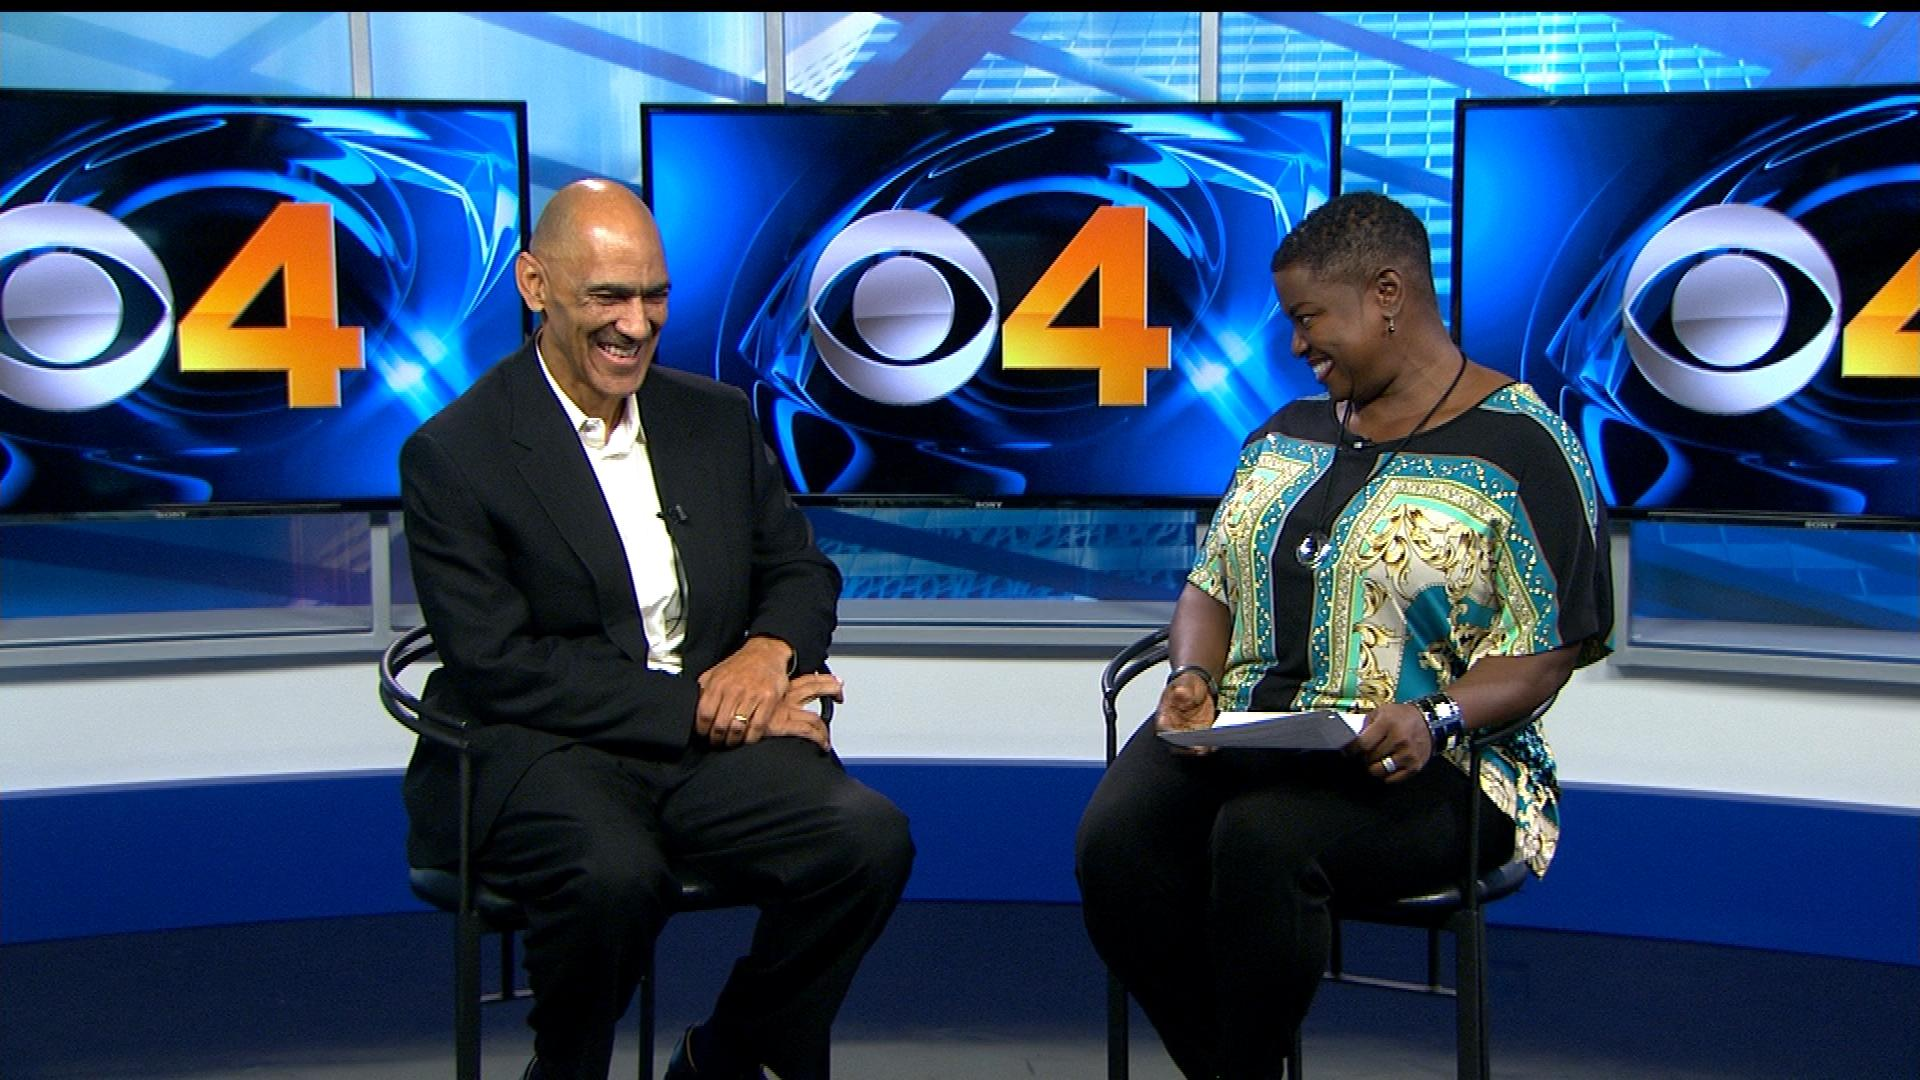 CBS4's Gloria Neal shares a laugh with former football coach Tony Dungy. (Credit: CBS)